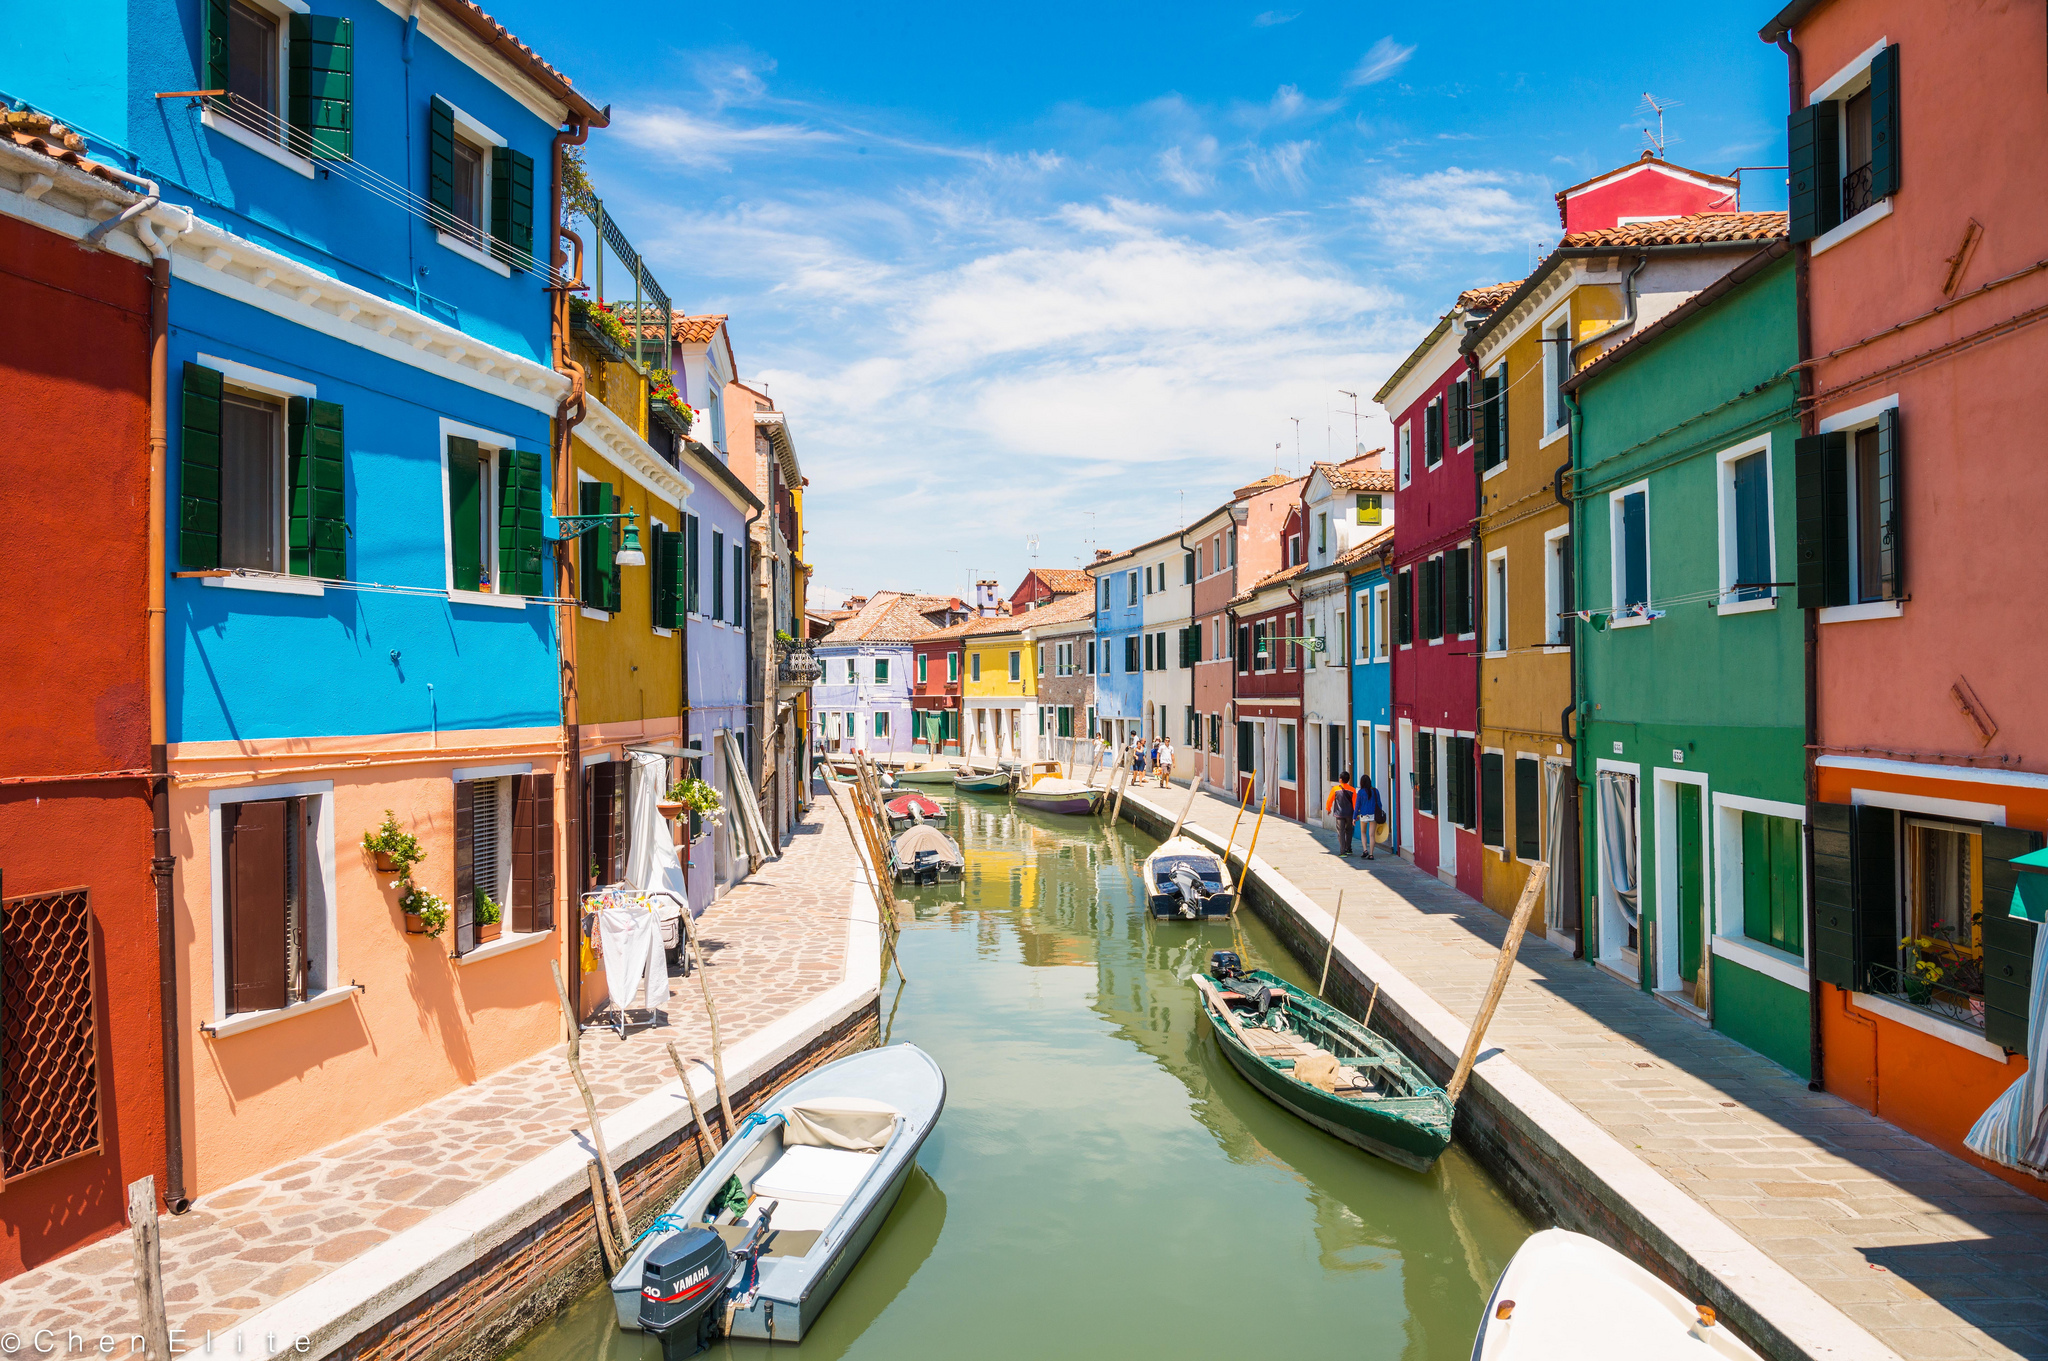 5 great day trips from Venice